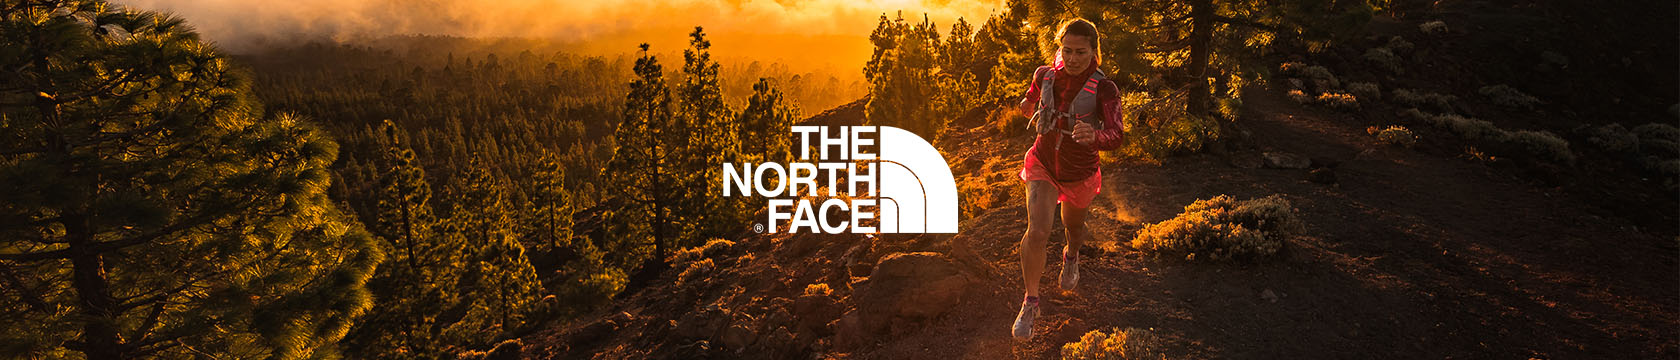 Woman jogging on hillside wearing The North Face gear